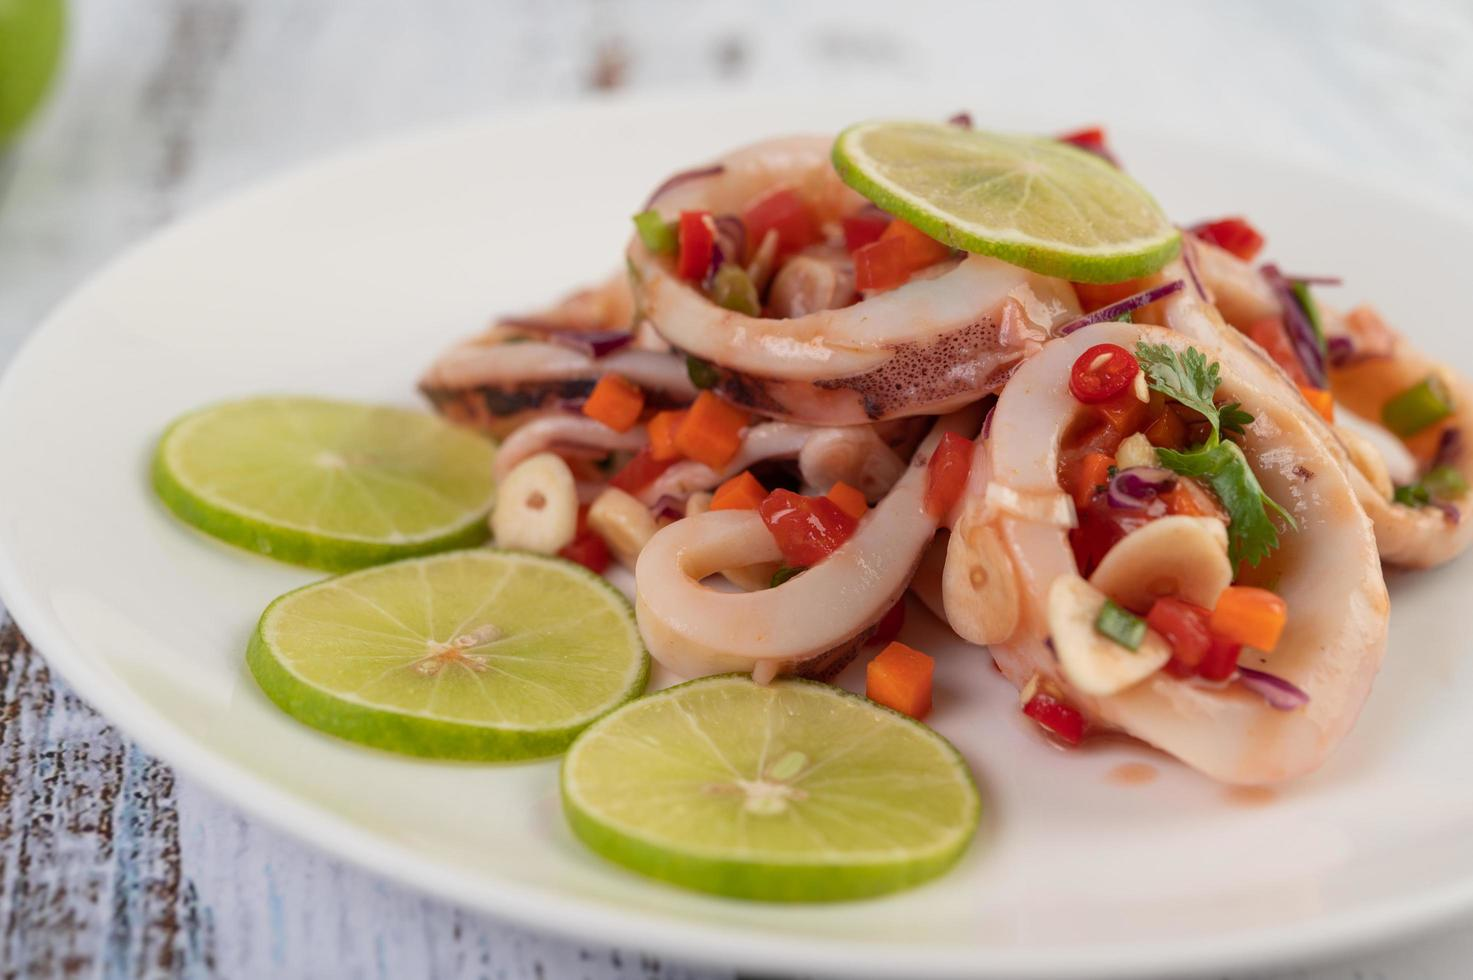 Spicy lemon squid dish photo